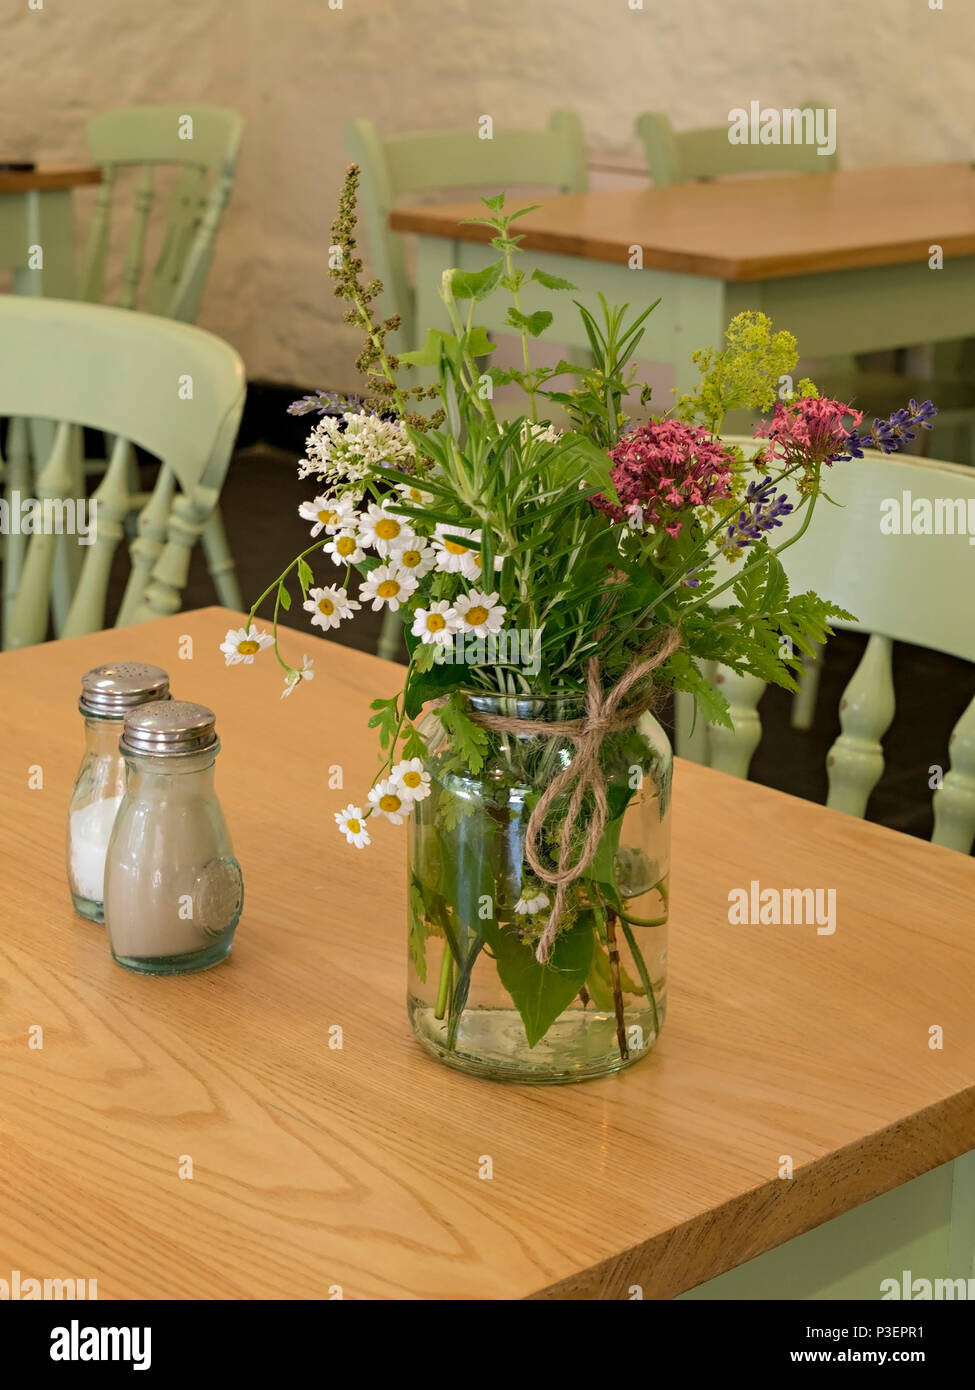 Simple Small Flower Arrangement In Glass Jam Jar Used As Table Decoration In Cafe Stock Photo Alamy